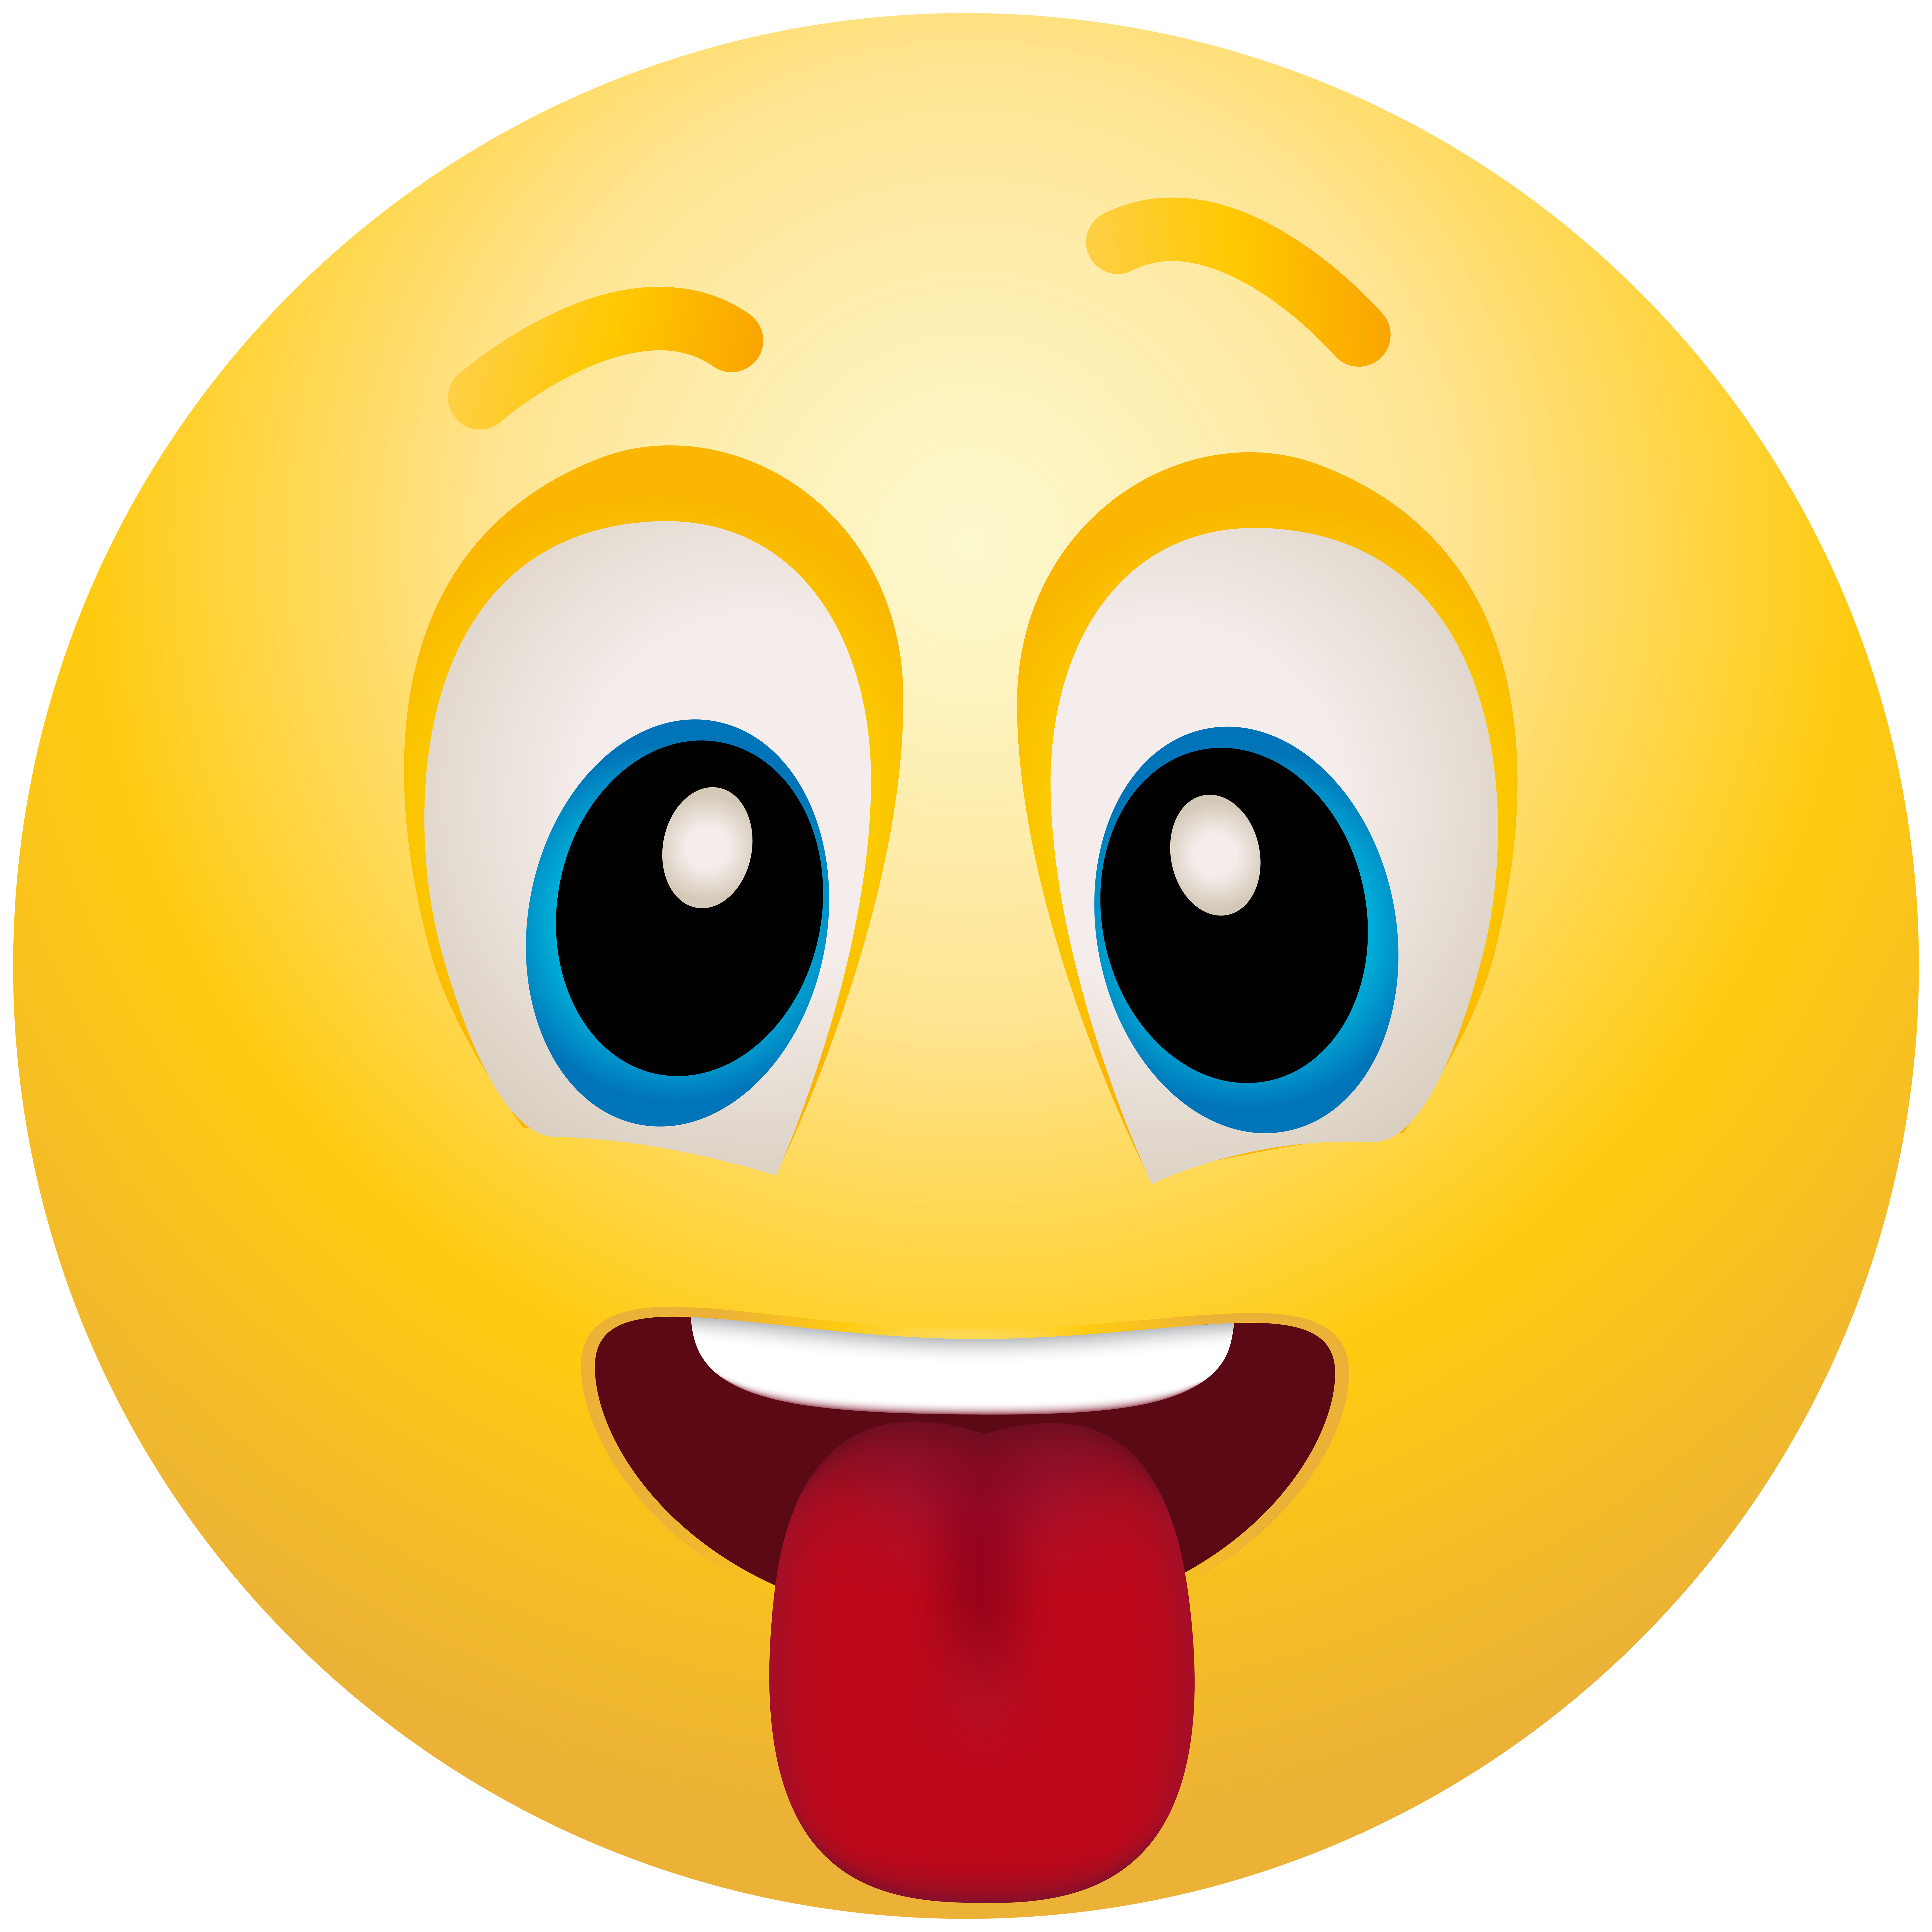 8000x8000 Tongue Out Emoticon Png Clip Art